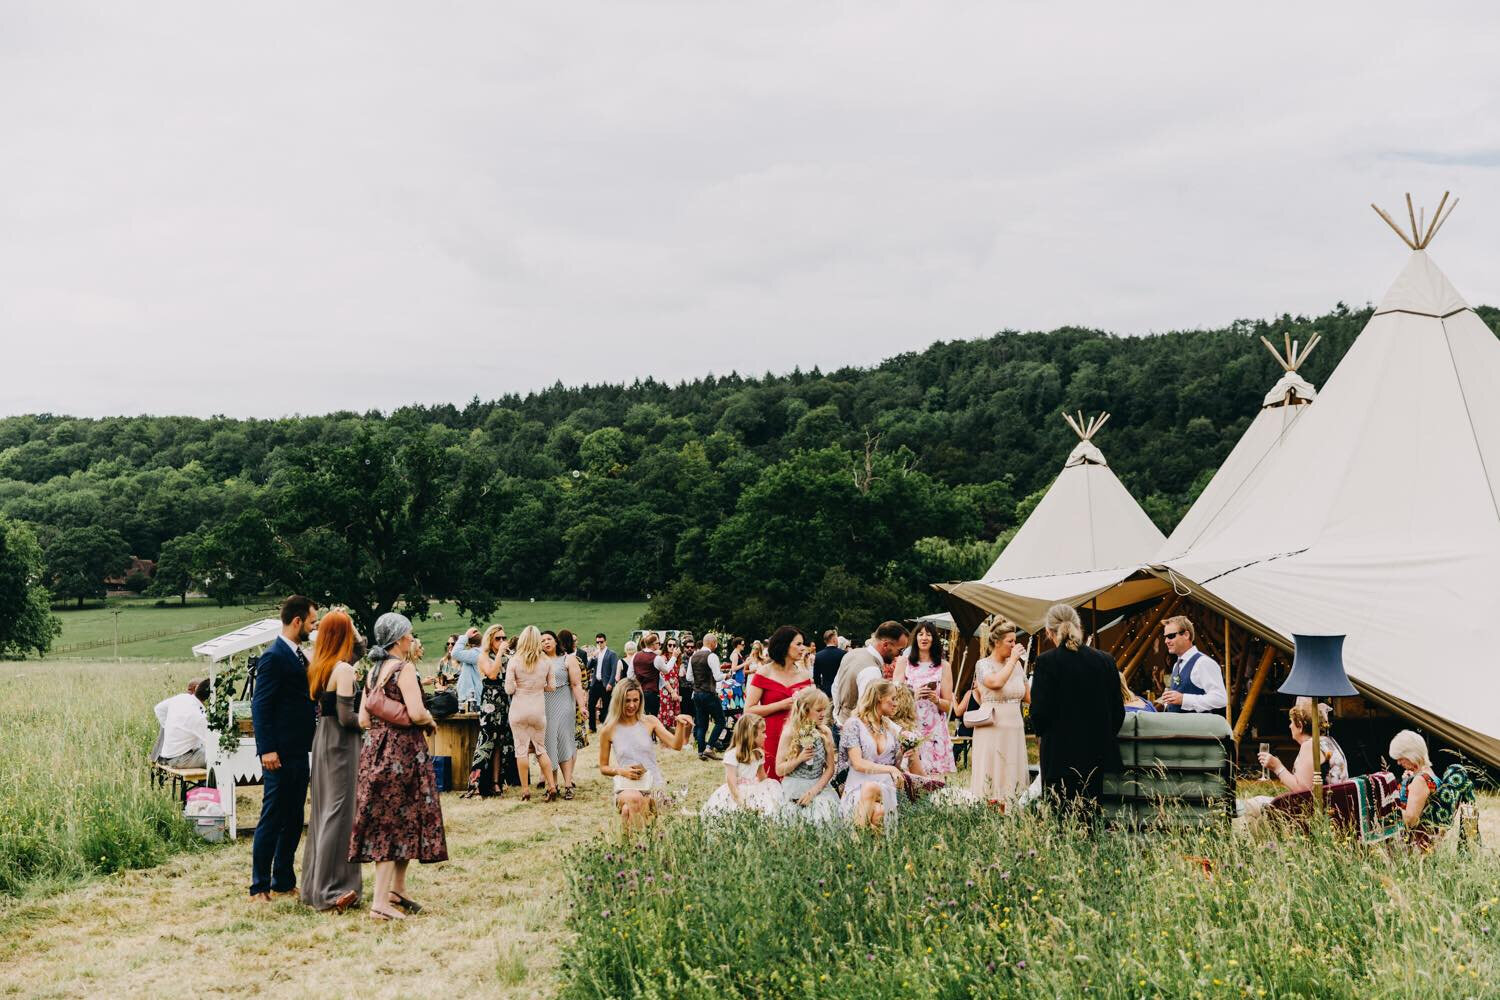 VIEW OUR BROCHURE - IDEAS AND INSPIRATION FOR YOUR TIPI WEDDING OR EVENT